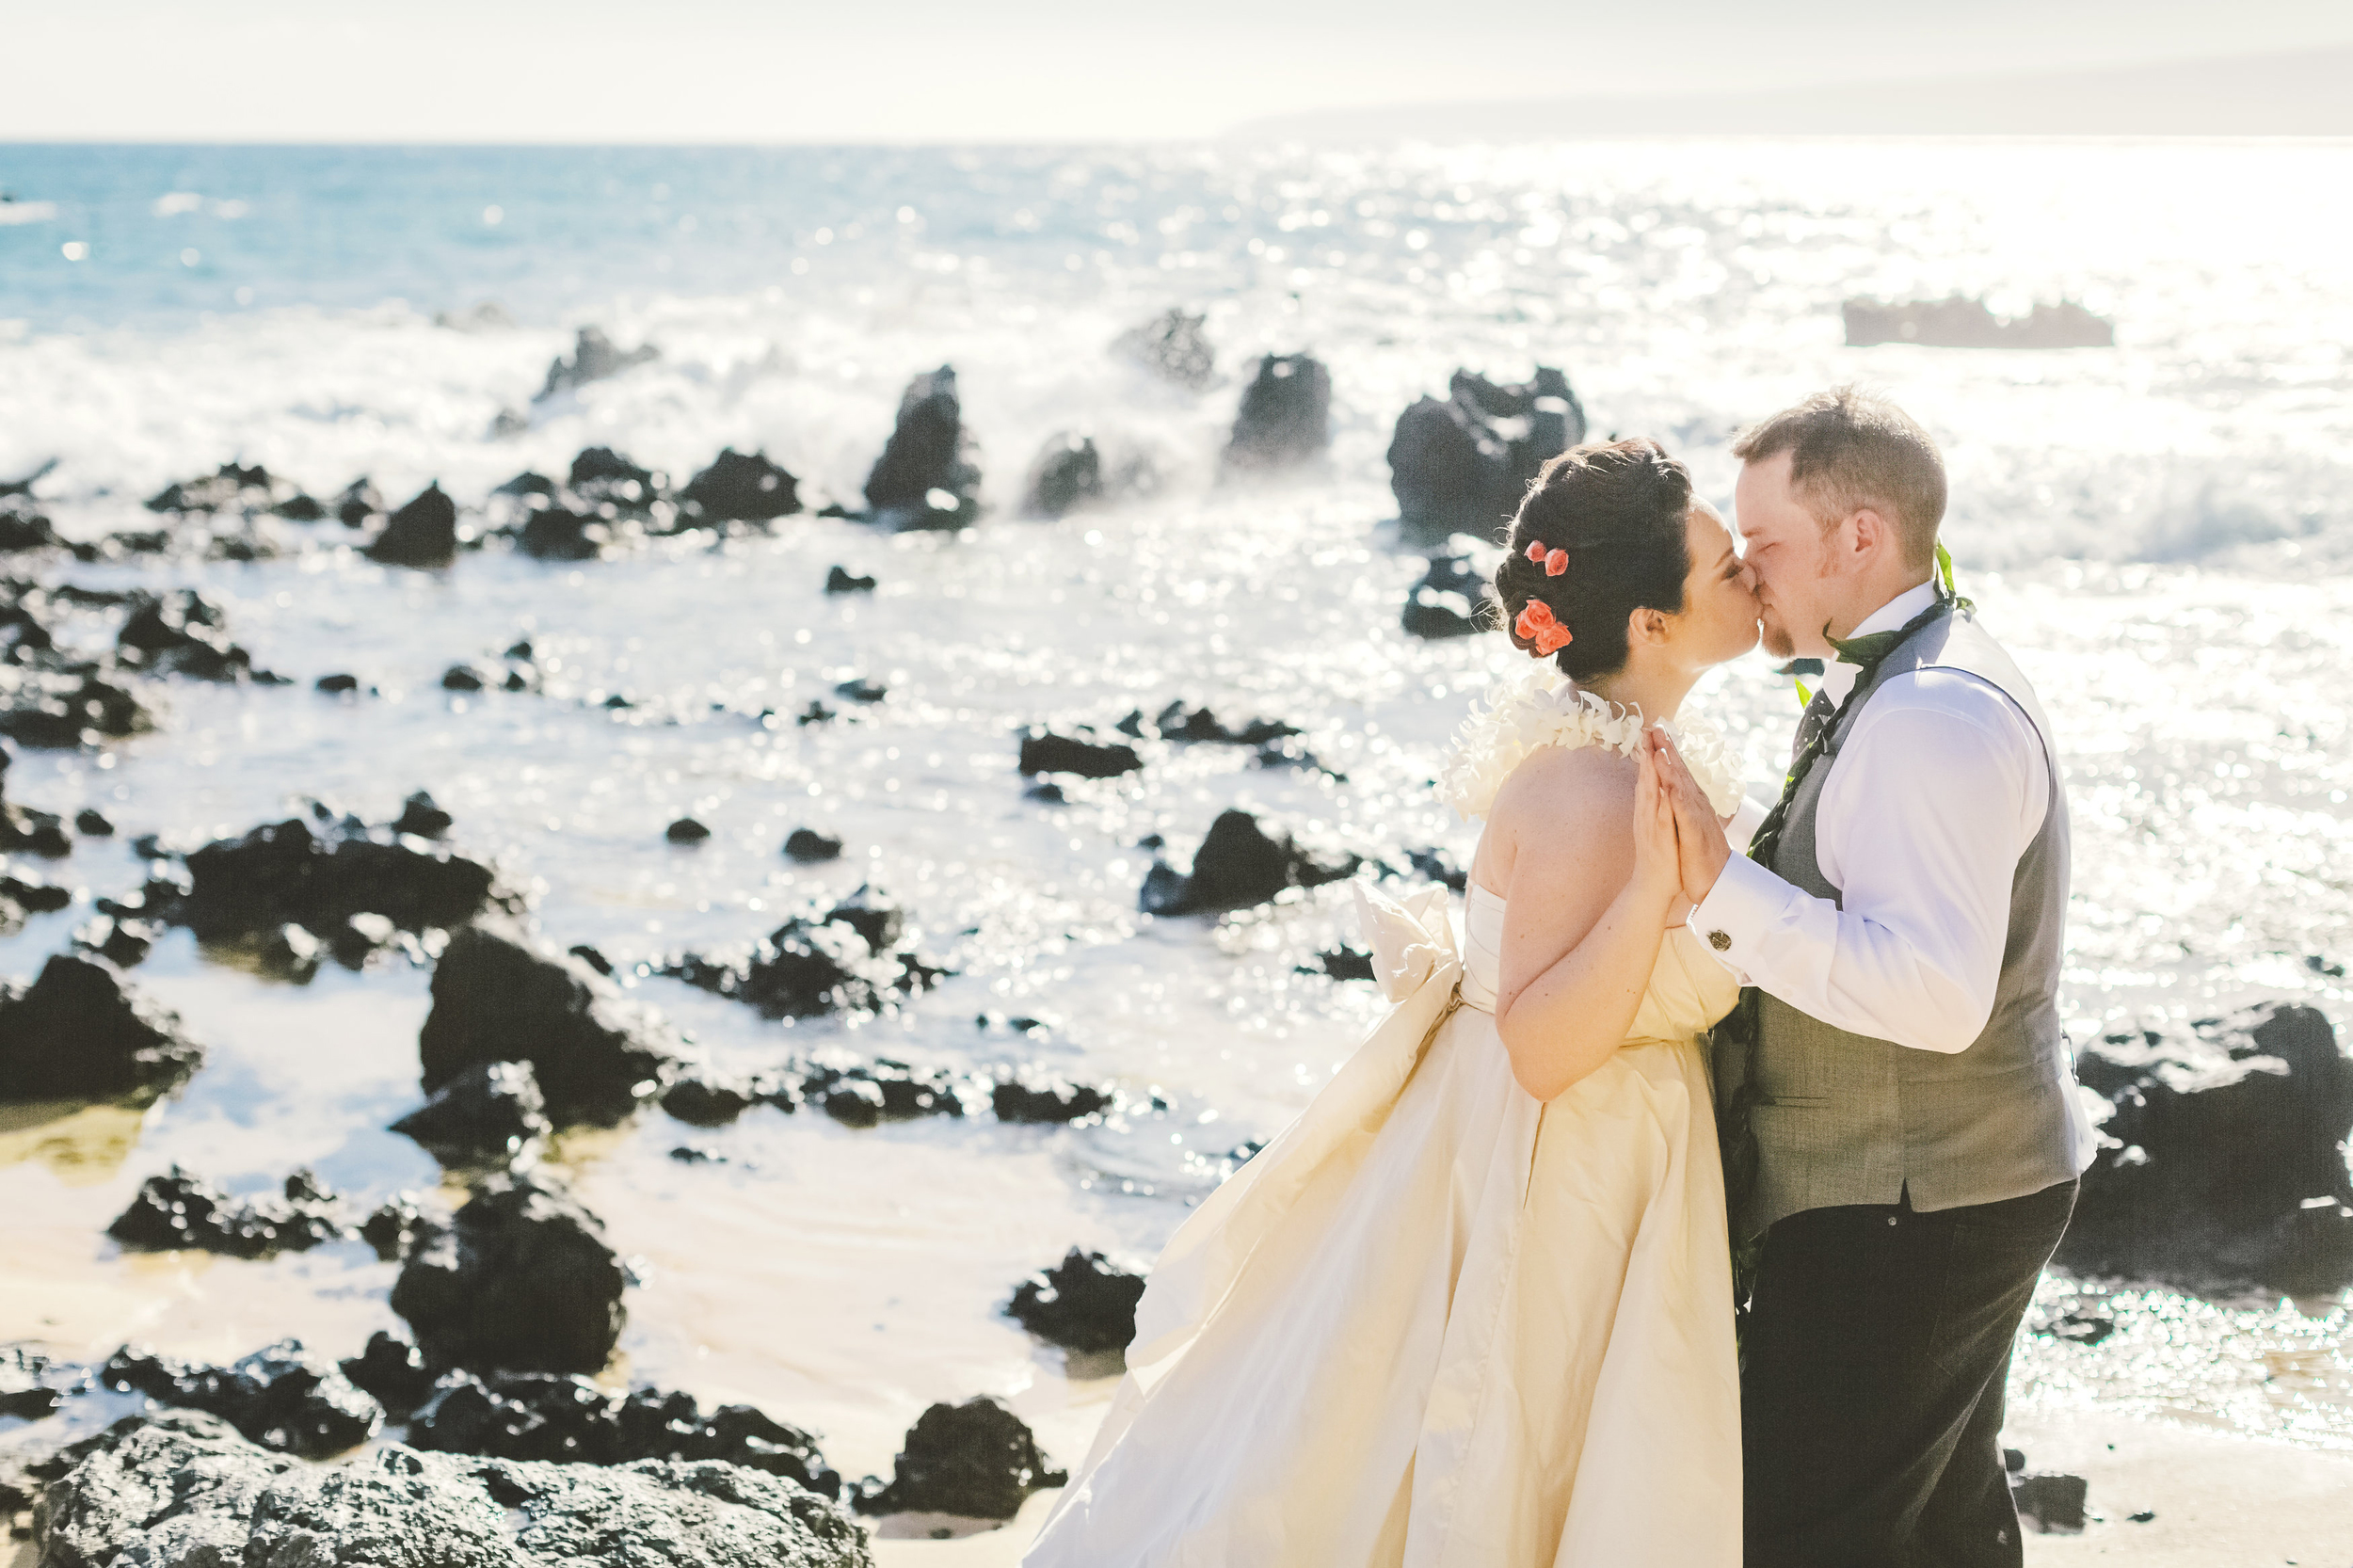 angie-diaz-photography-maui-elopement-40.jpg